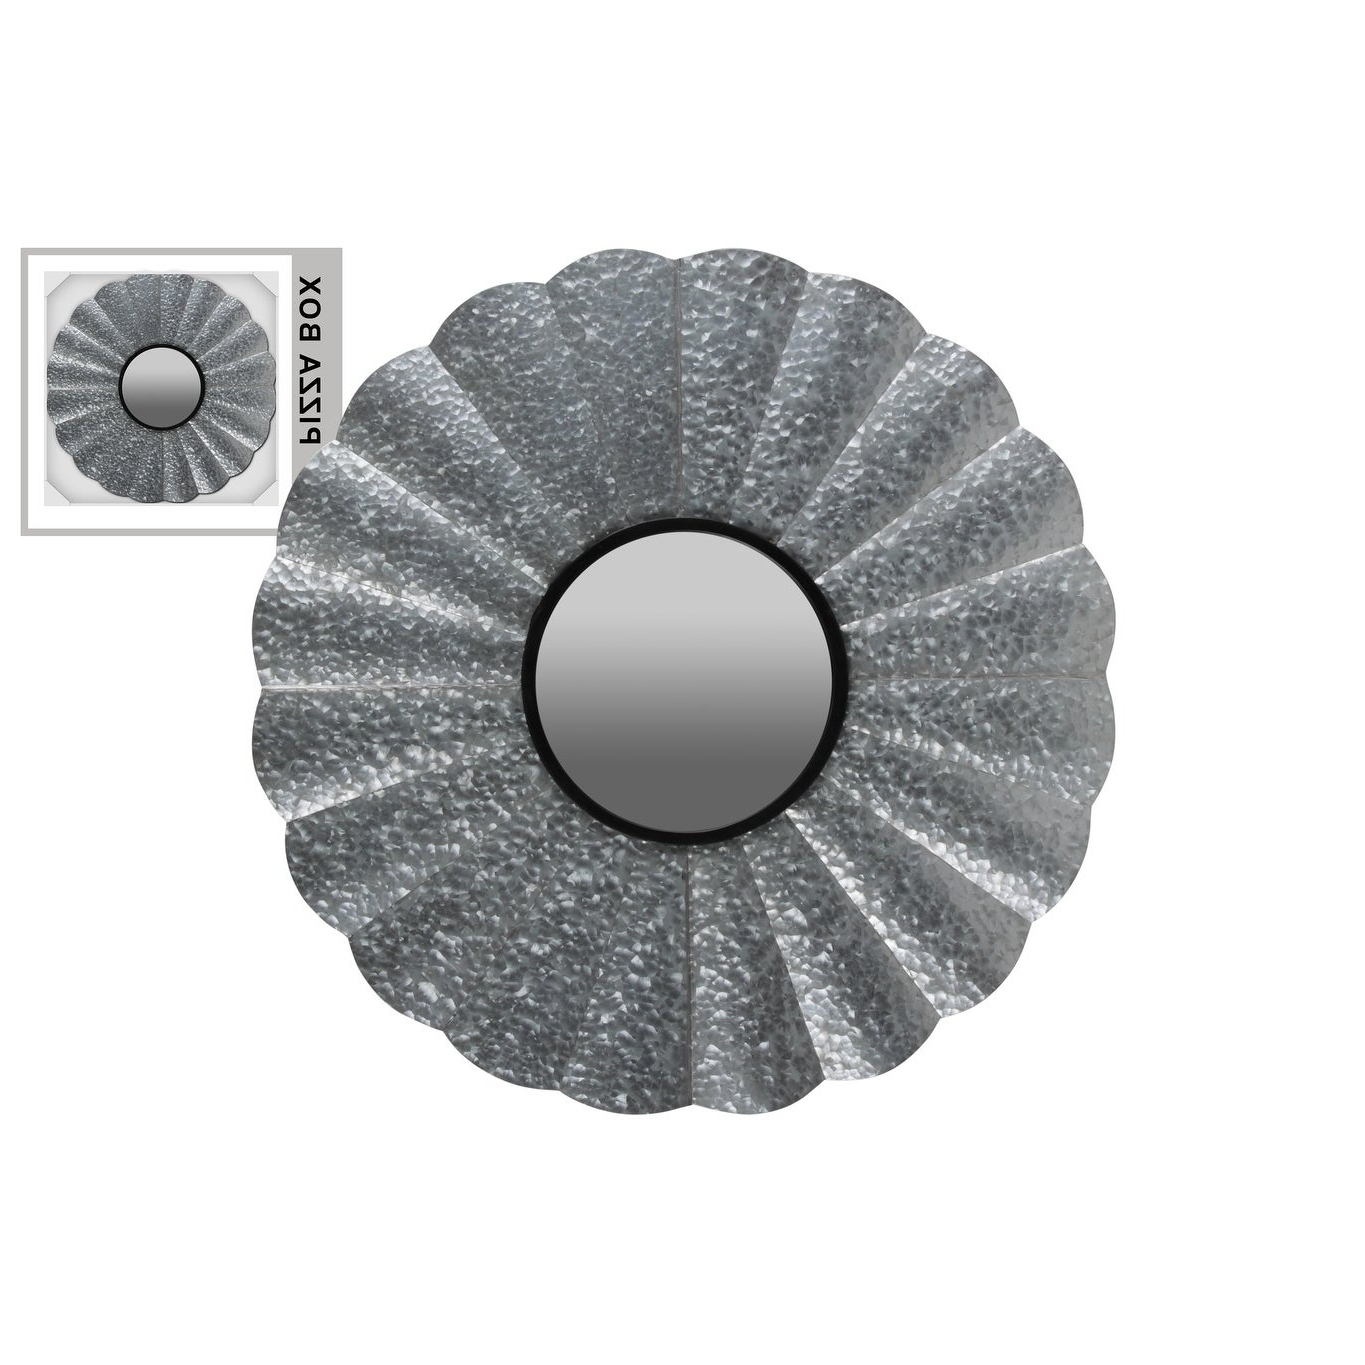 Popular Metal Round Wall Mirror Galvanized Finish Gray – Silver – N/a Within Round Galvanized Metallic Wall Mirrors (View 17 of 20)